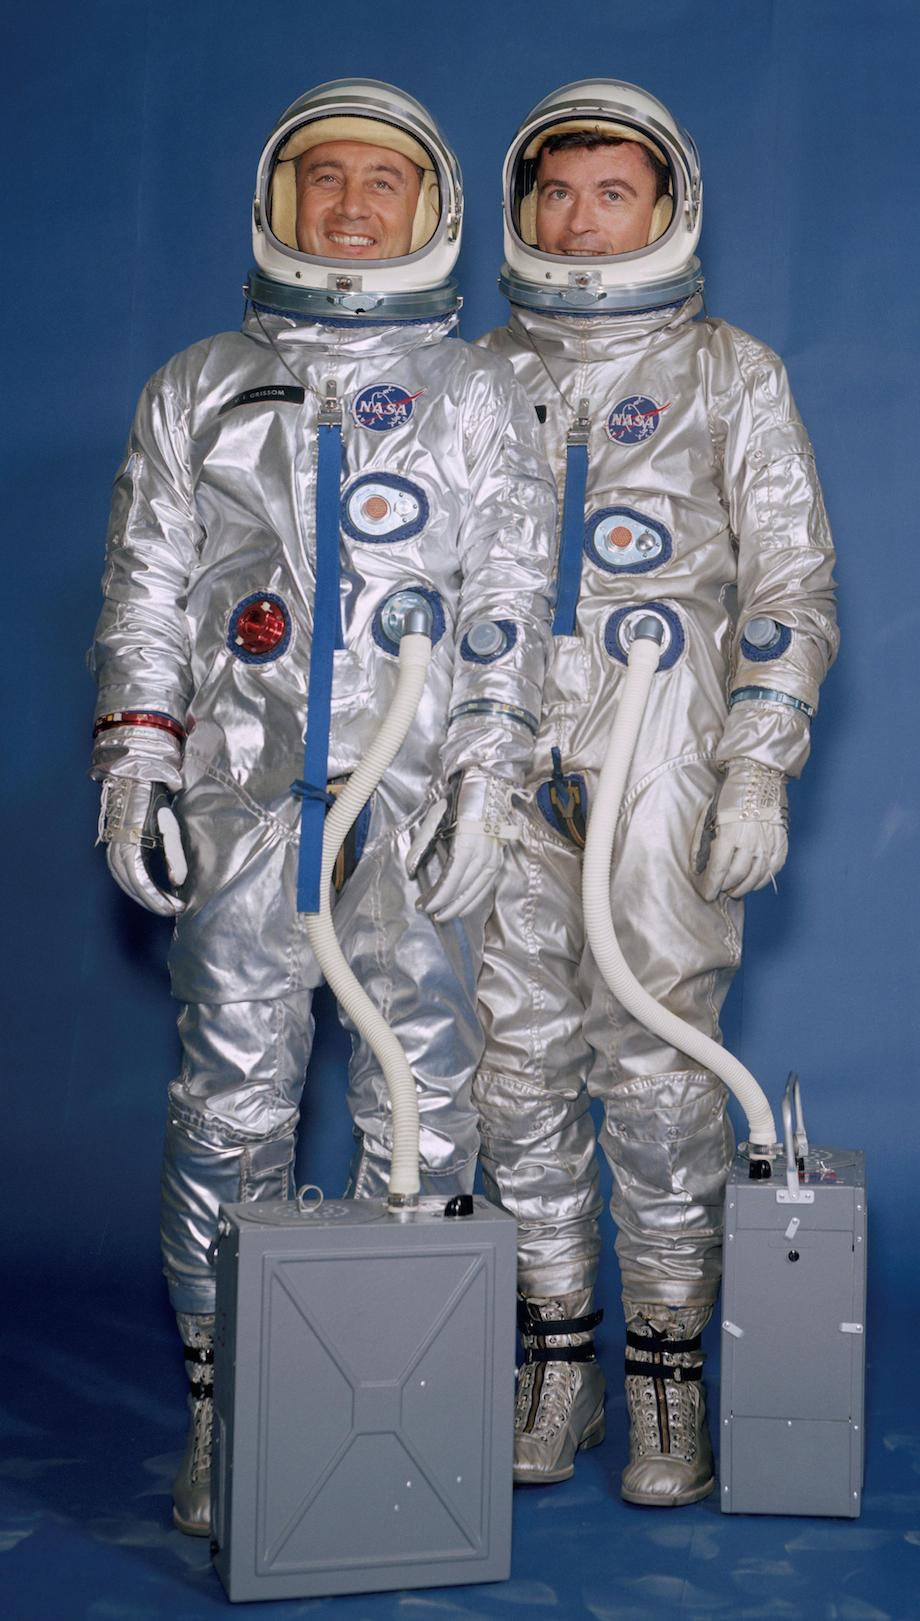 check-out-the-evolution-of-the-space-suit-41-hq-photos-12